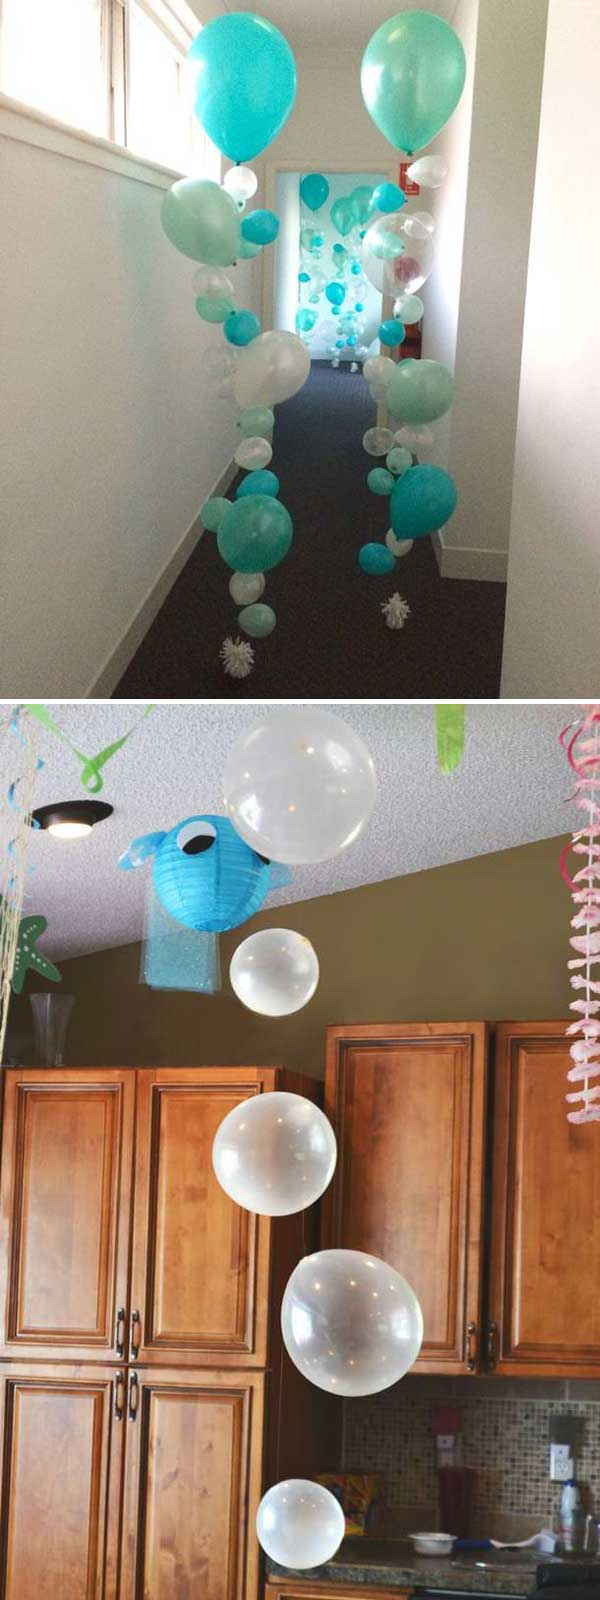 Stunning under the sea decorating ideas kids would love for Sea inspired home decor